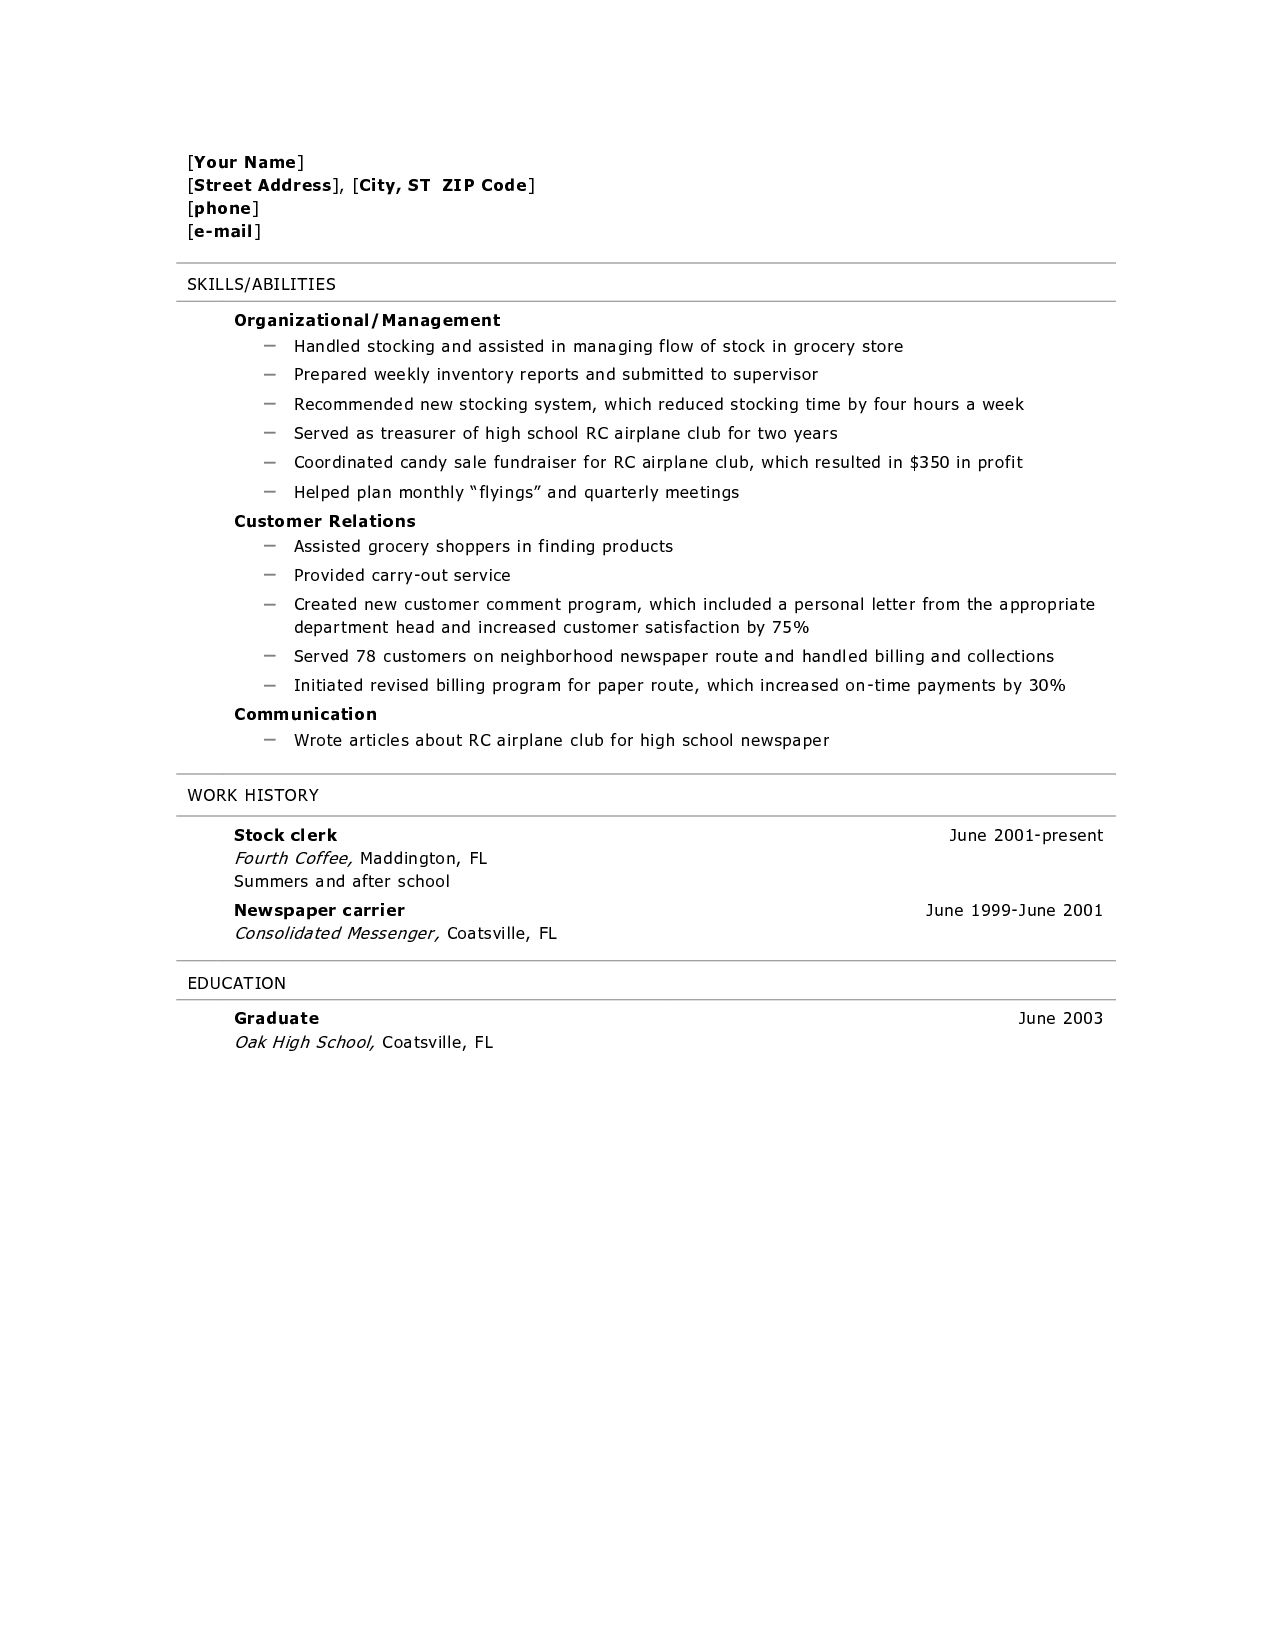 Grad School Resume Template Cover Letter Graduate Application Builder For  Resume For Grad School